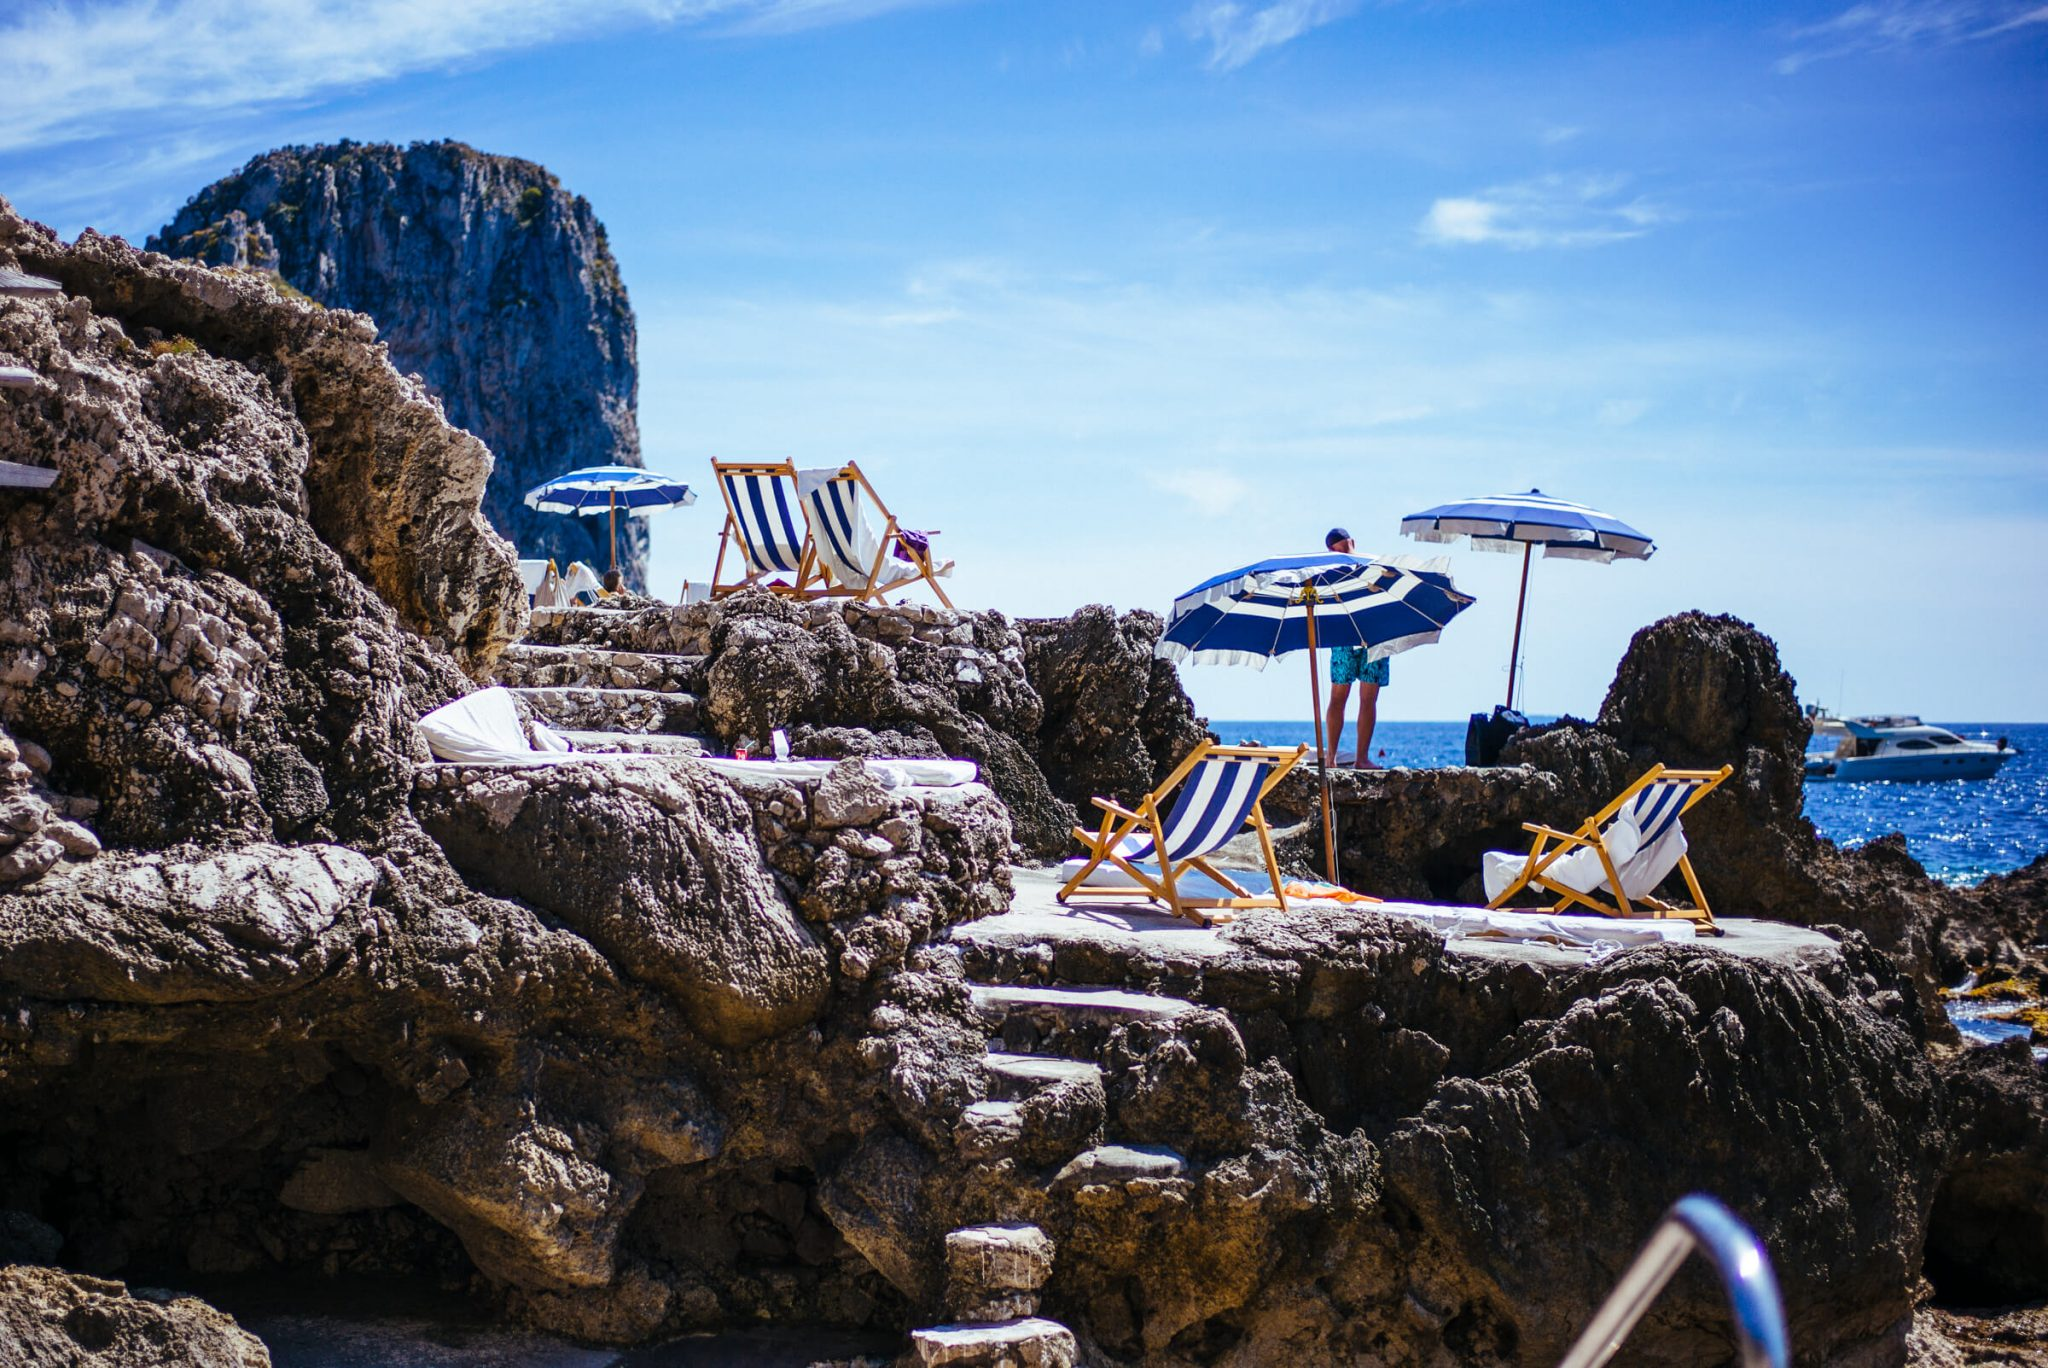 stackliving-beach-bars-fontelina-beach-club-capri-italy-04